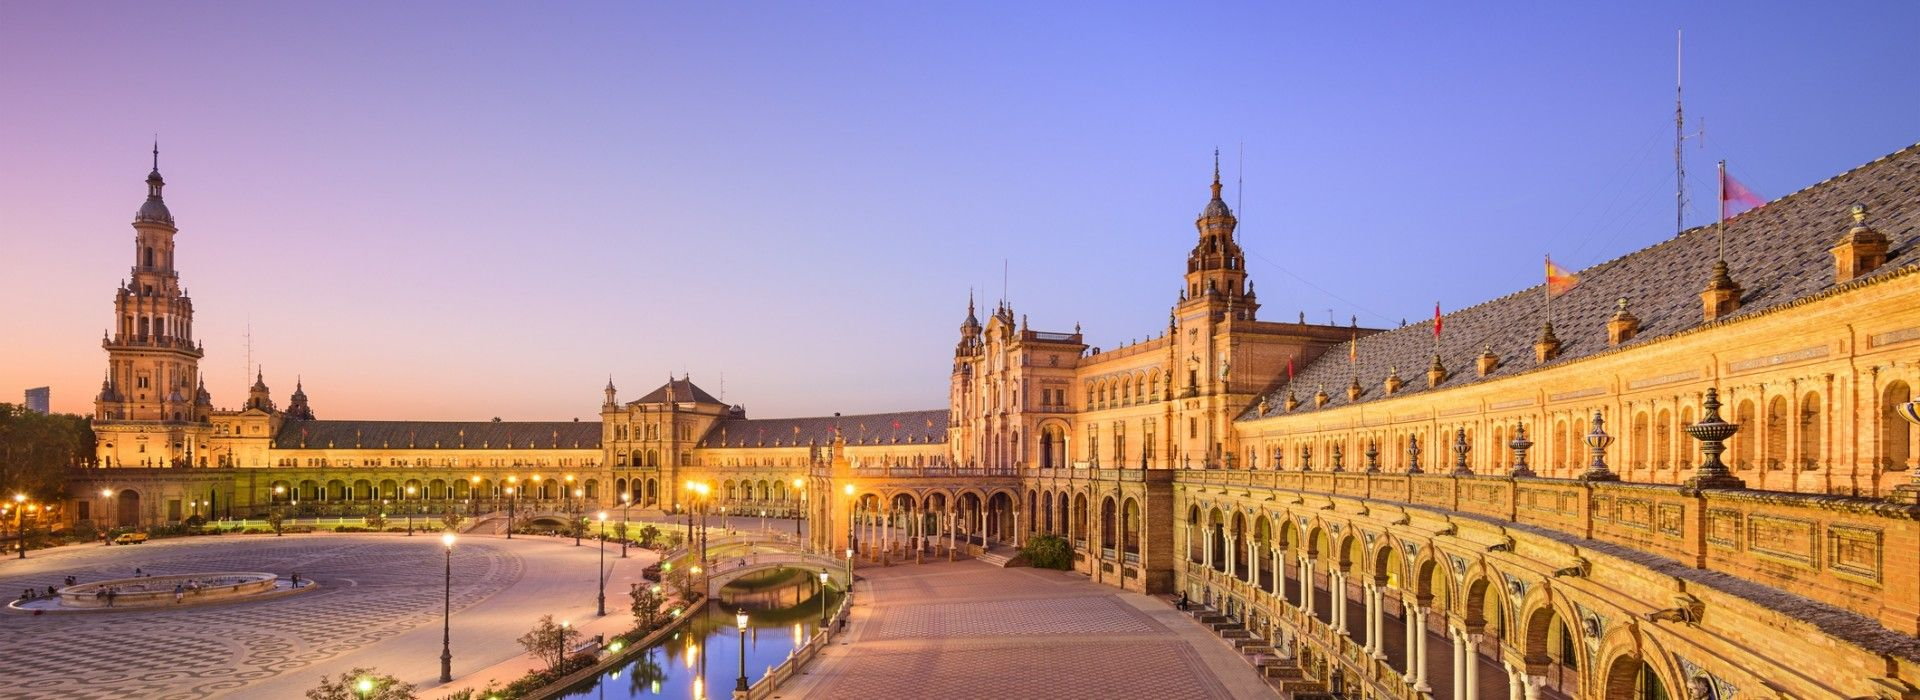 Special interests and hobbies Tours in Spain